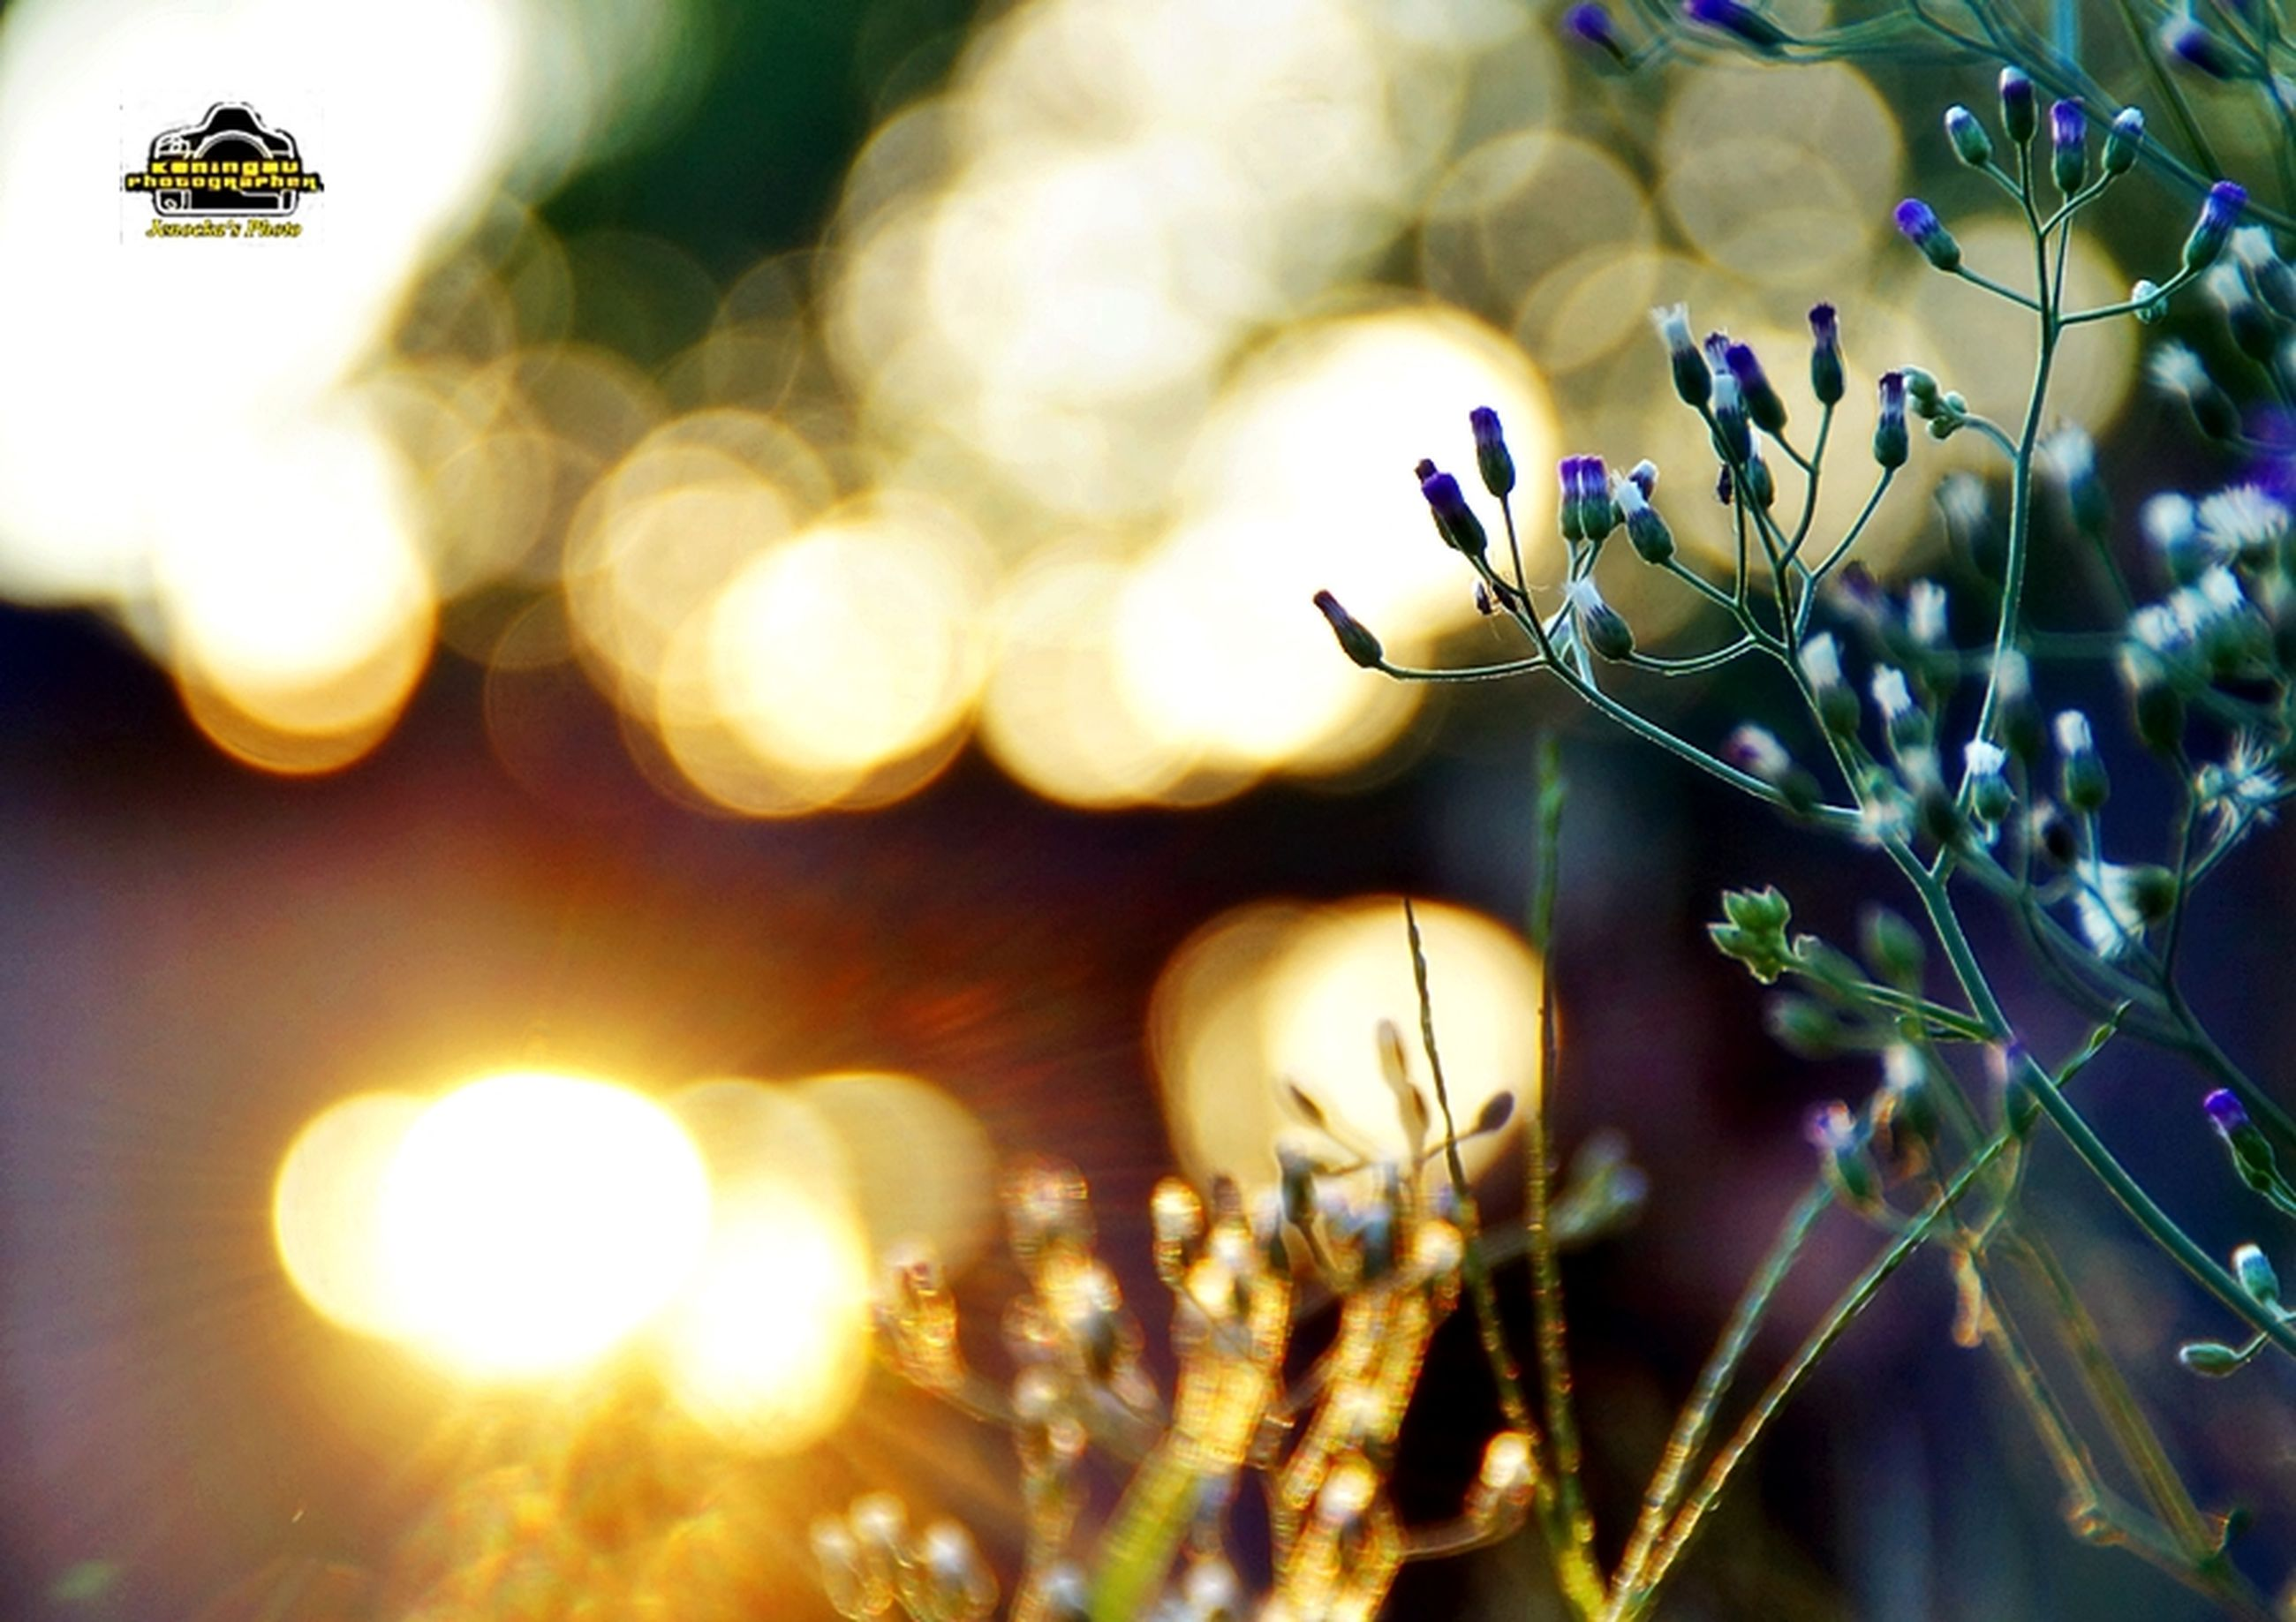 focus on foreground, close-up, growth, selective focus, branch, plant, leaf, twig, lens flare, nature, hanging, low angle view, tree, sunlight, outdoors, fragility, stem, no people, sun, beauty in nature